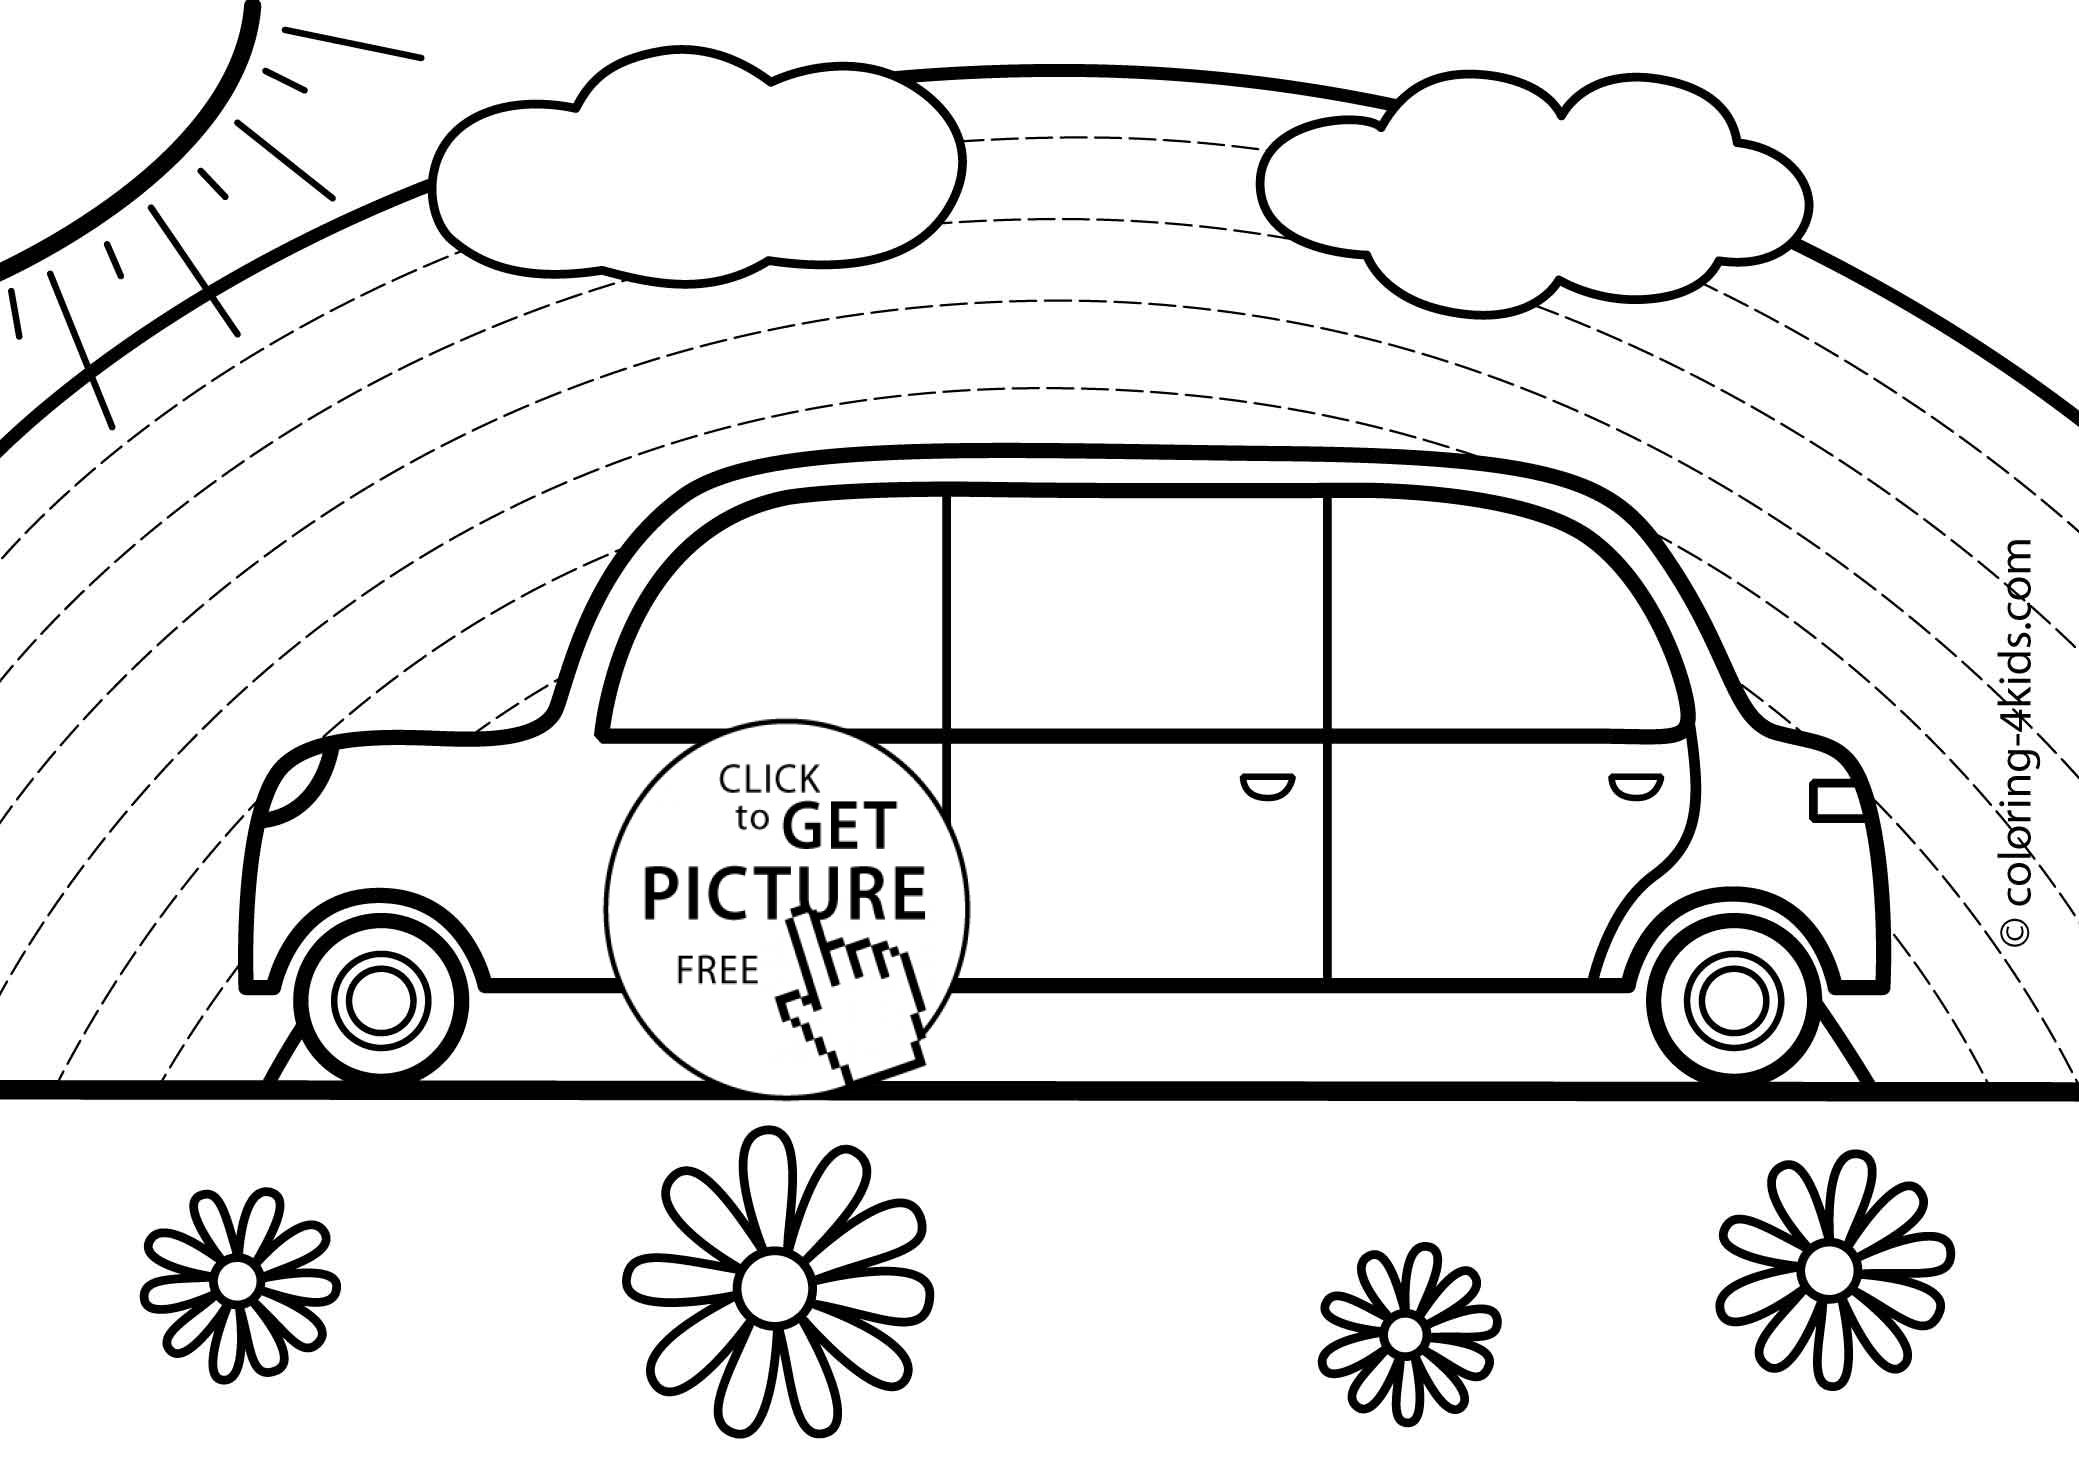 Rainbow Car transportation coloring pages for kids, printable